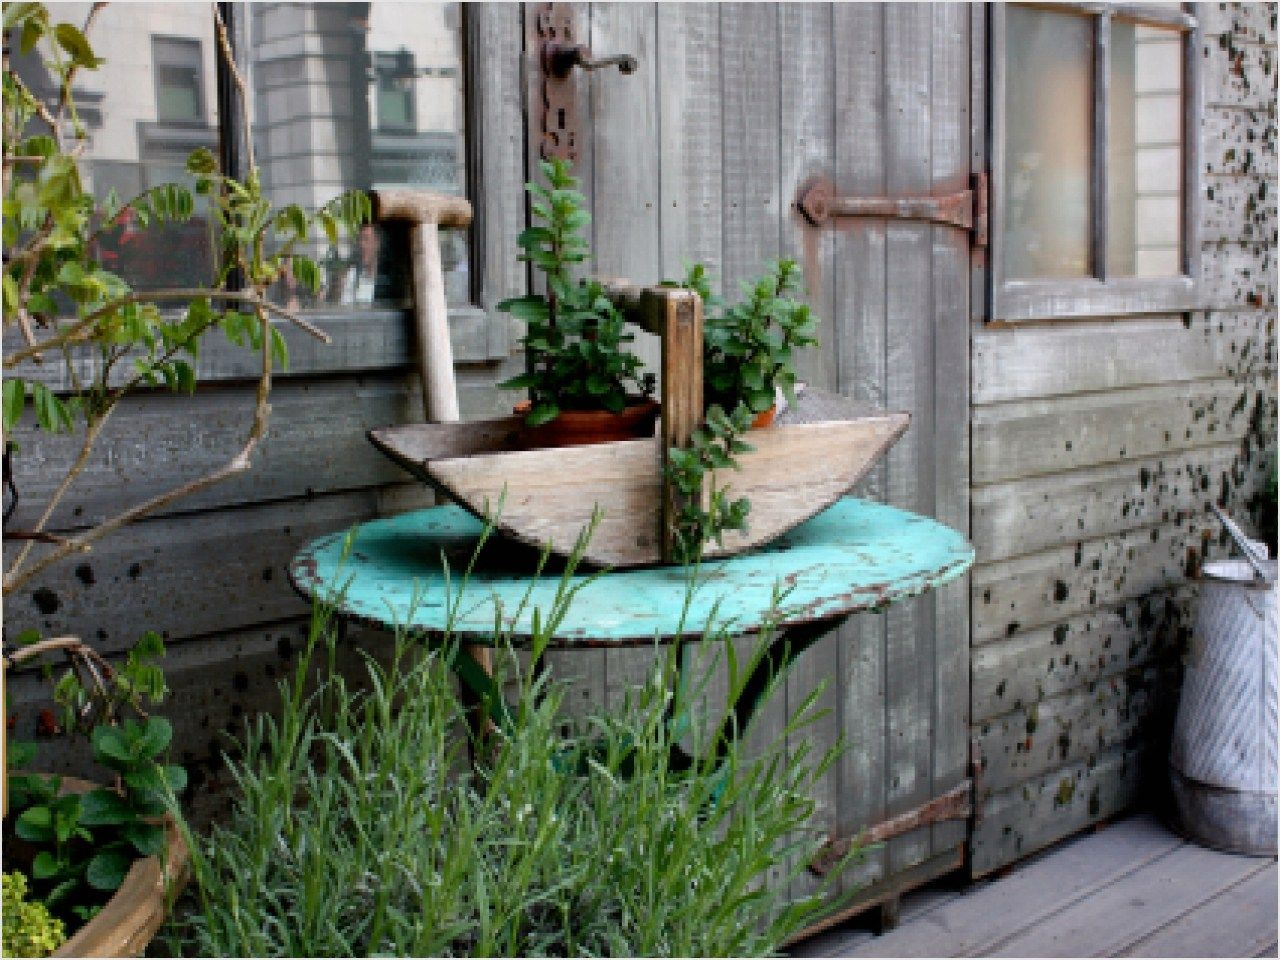 42 beautiful rustic outdoor decorating ideas 37 home and garden decorating ideas rustic garden decor 4